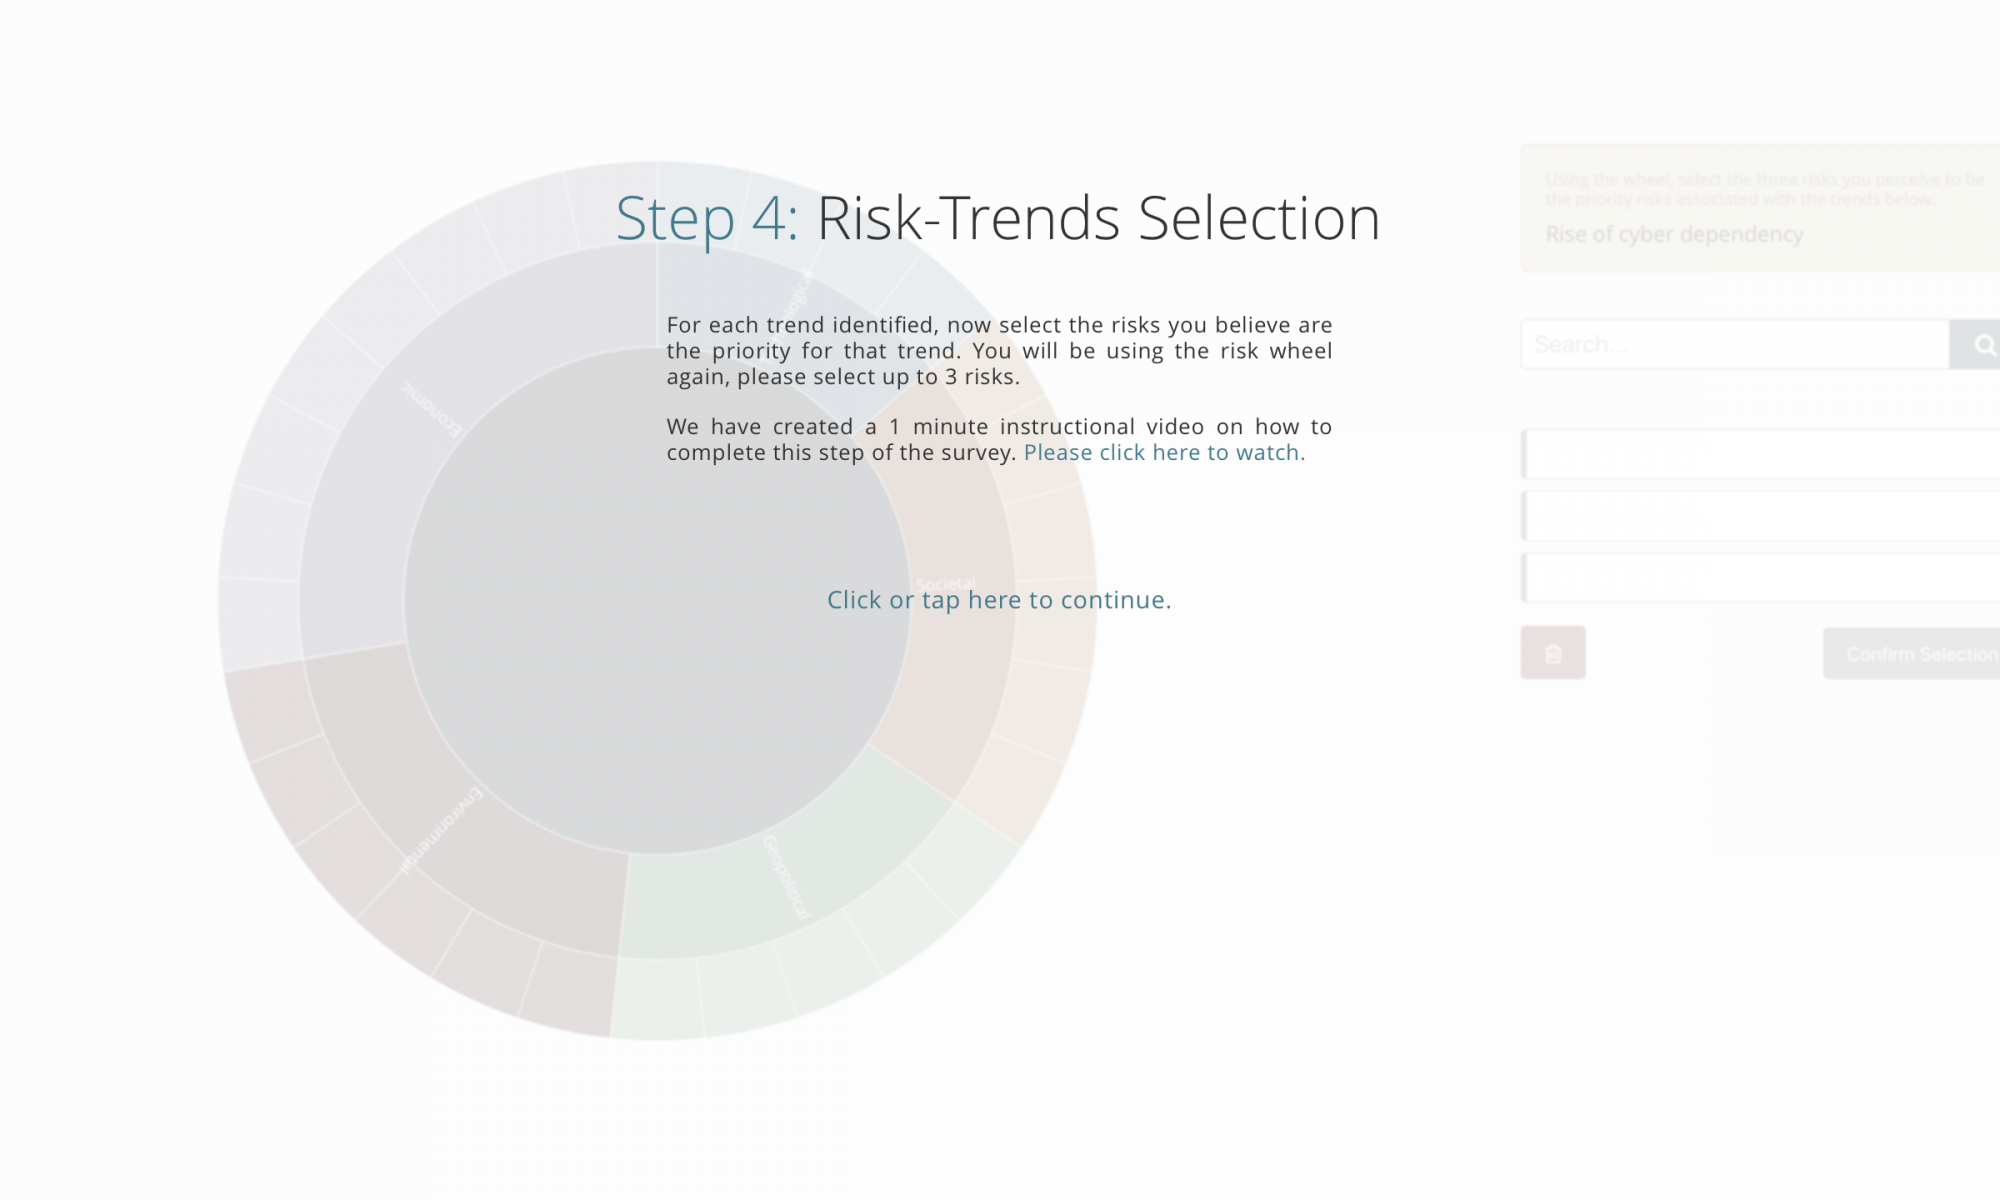 Step 4 - Trend Risk selection